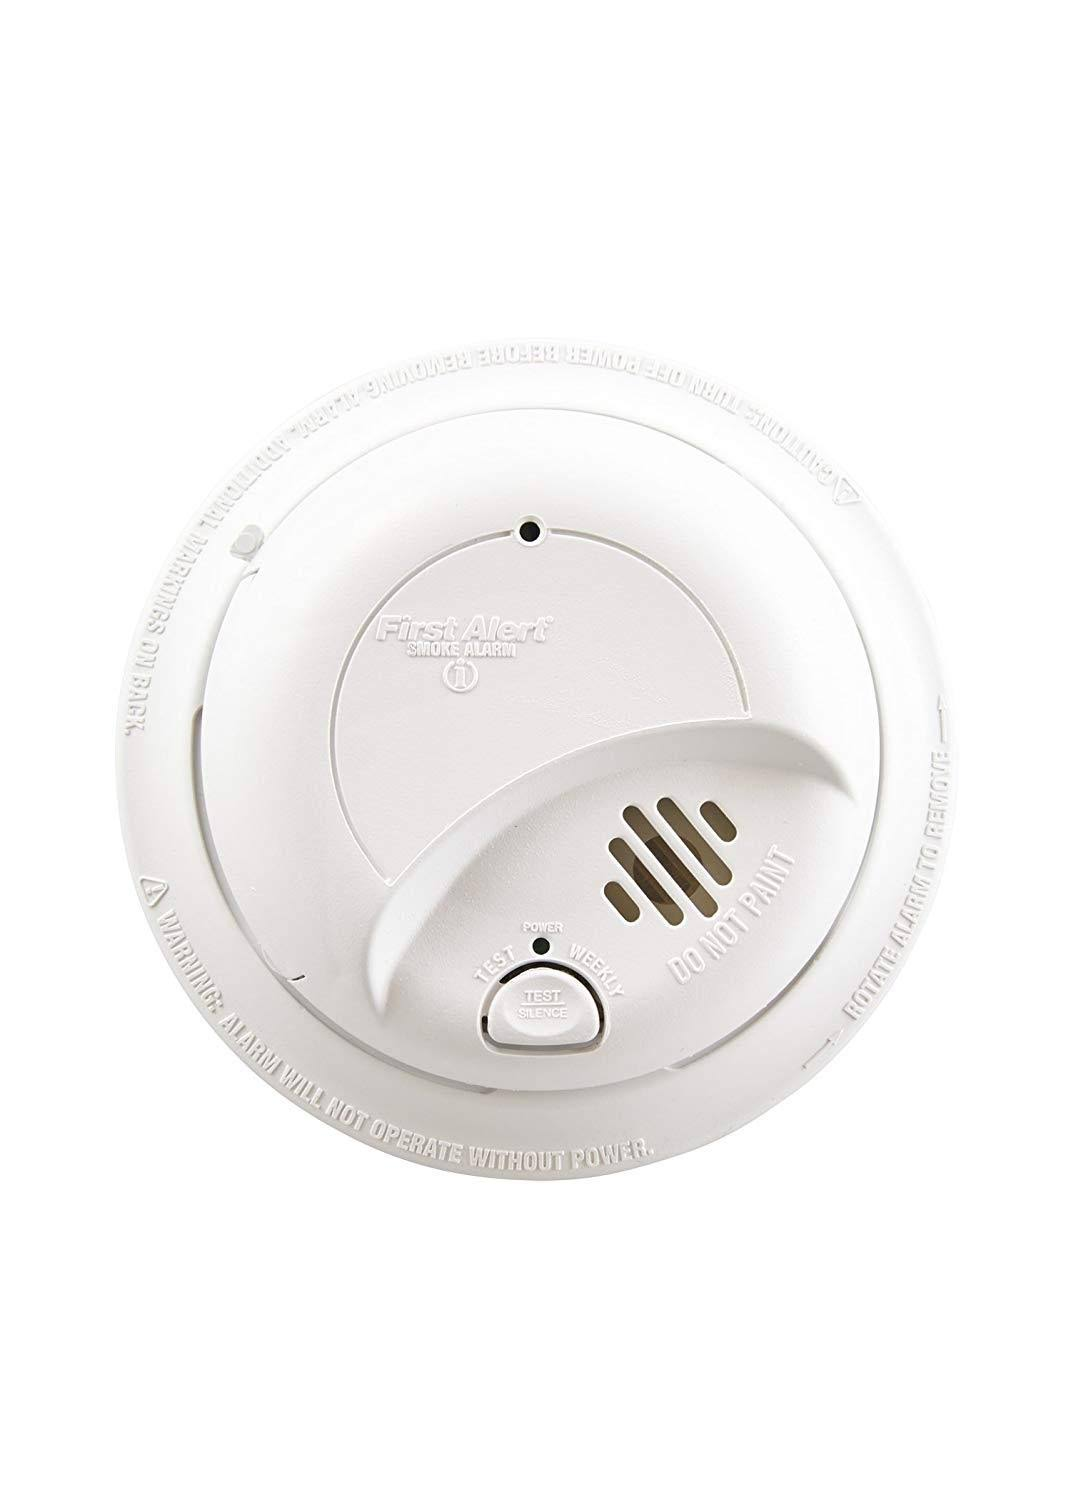 First Alert Hard Wired Ionization Smoke Alarm - White